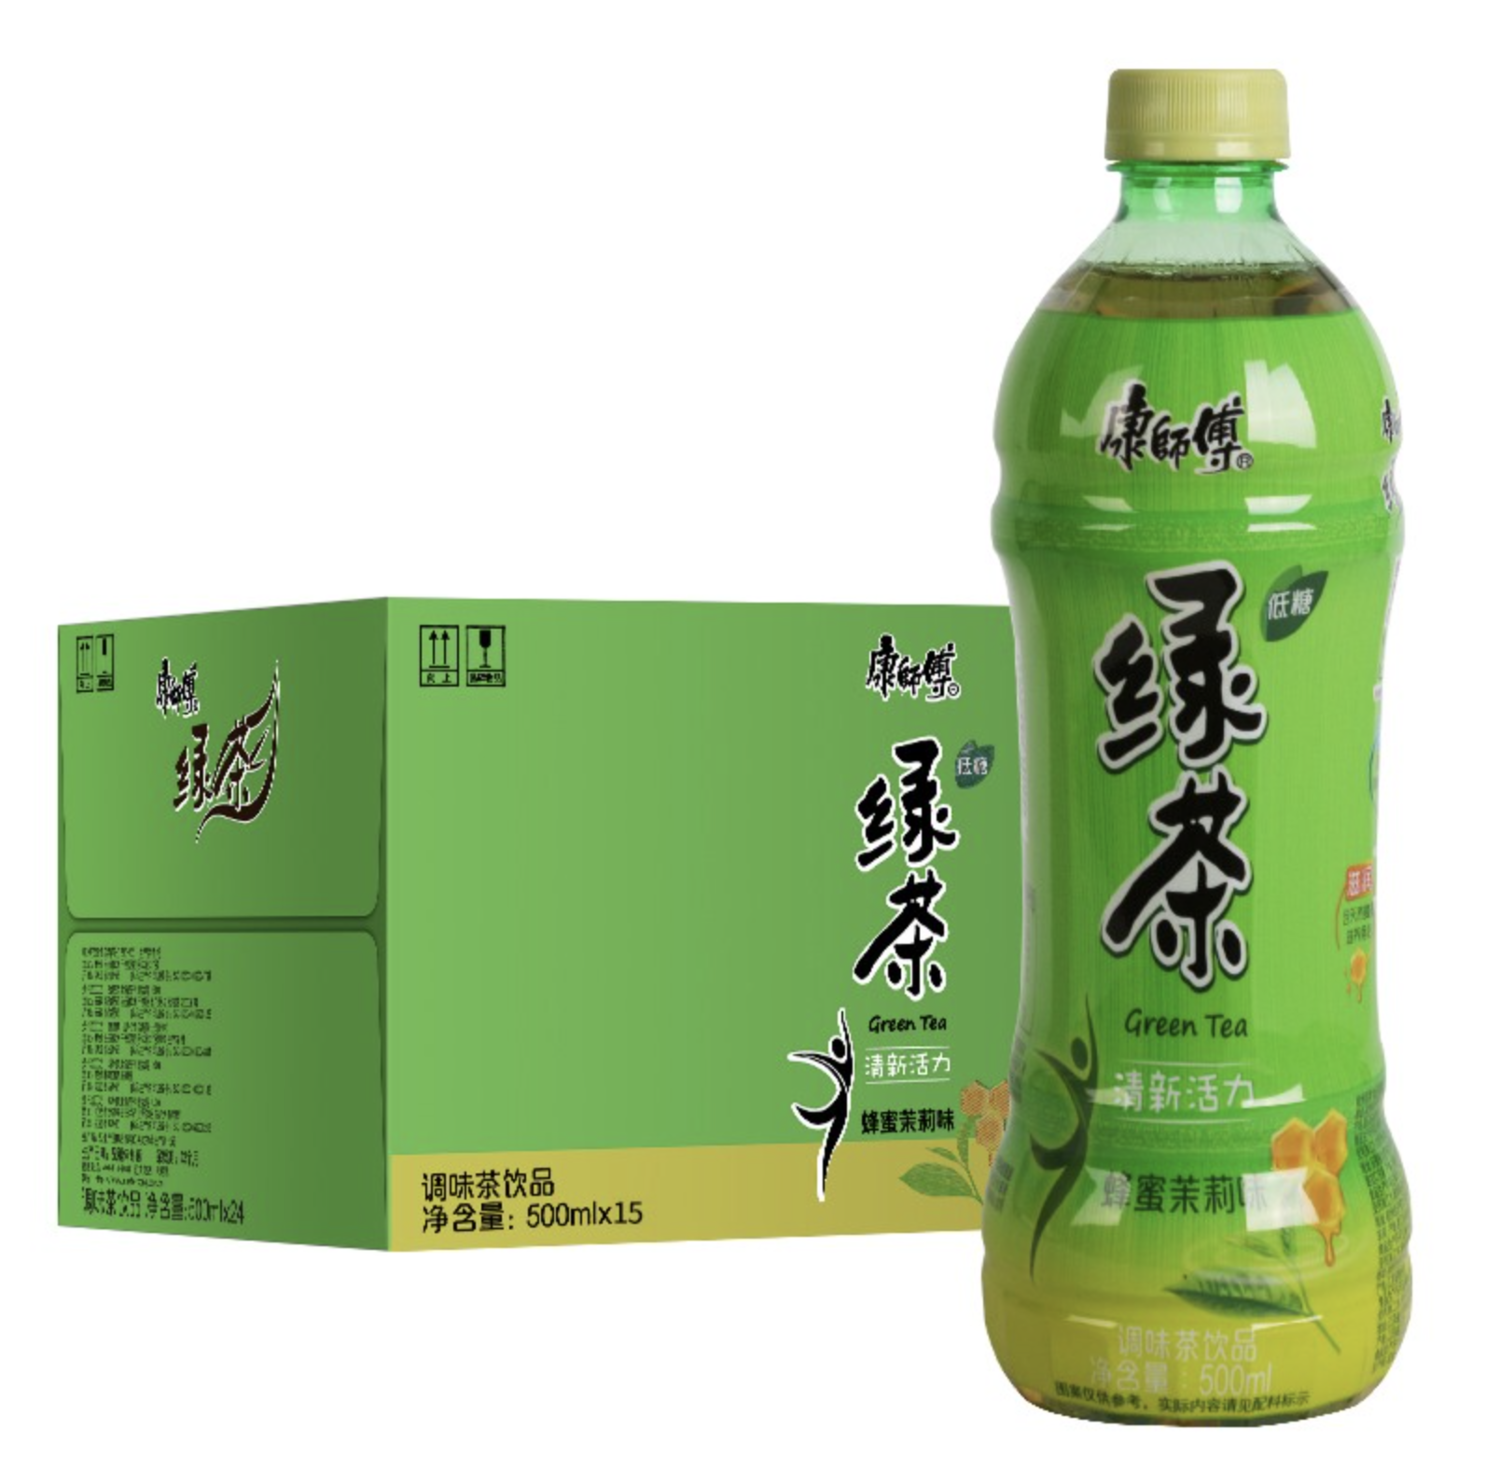 康师傅绿茶 500ml x 15 GREEN TEA 500 ML*15